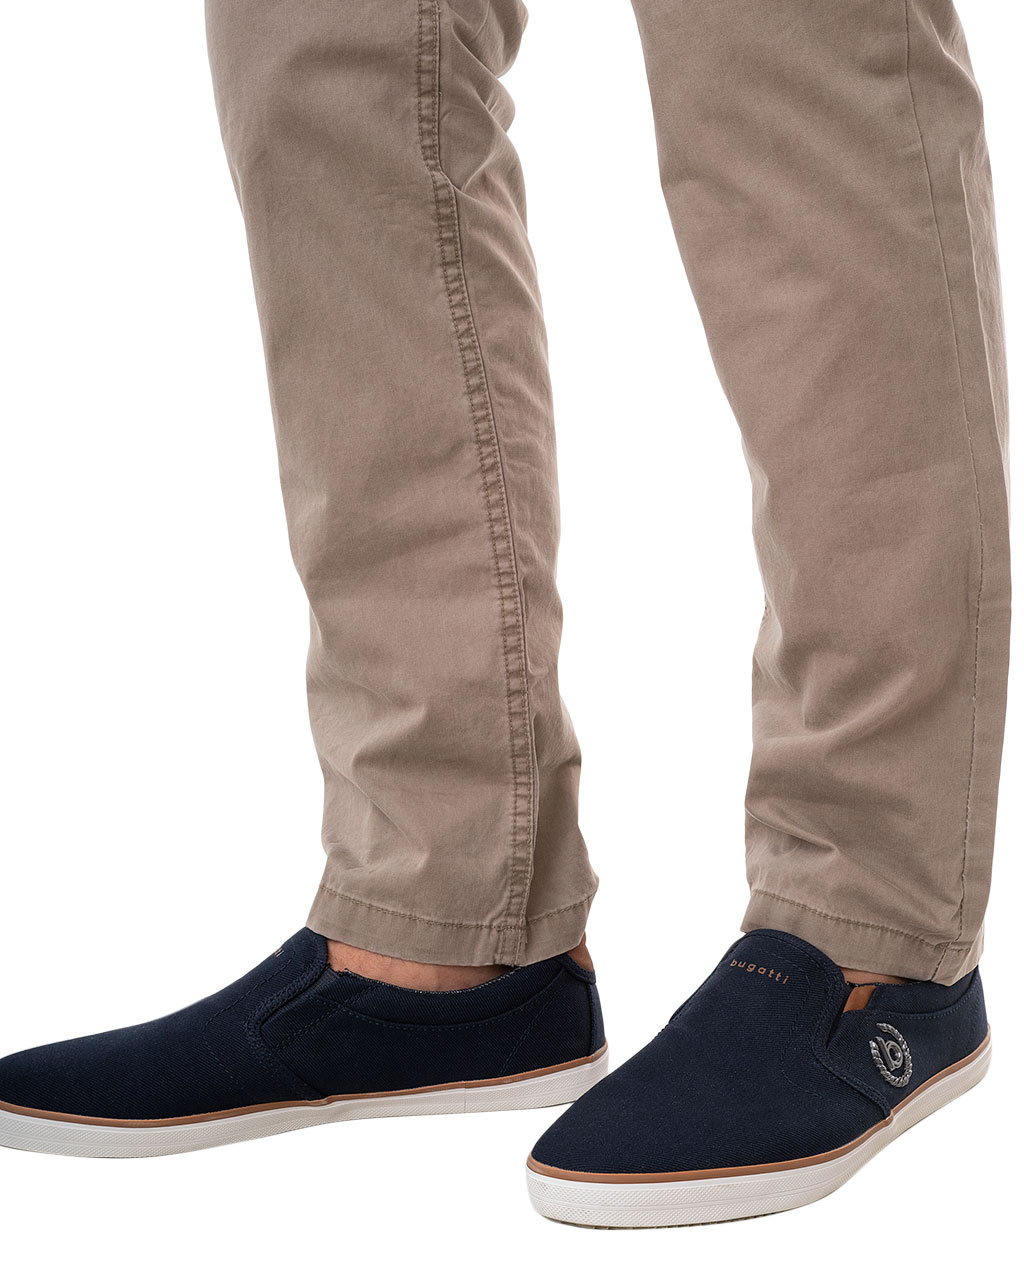 Men's trousers 123648/6                 (4)